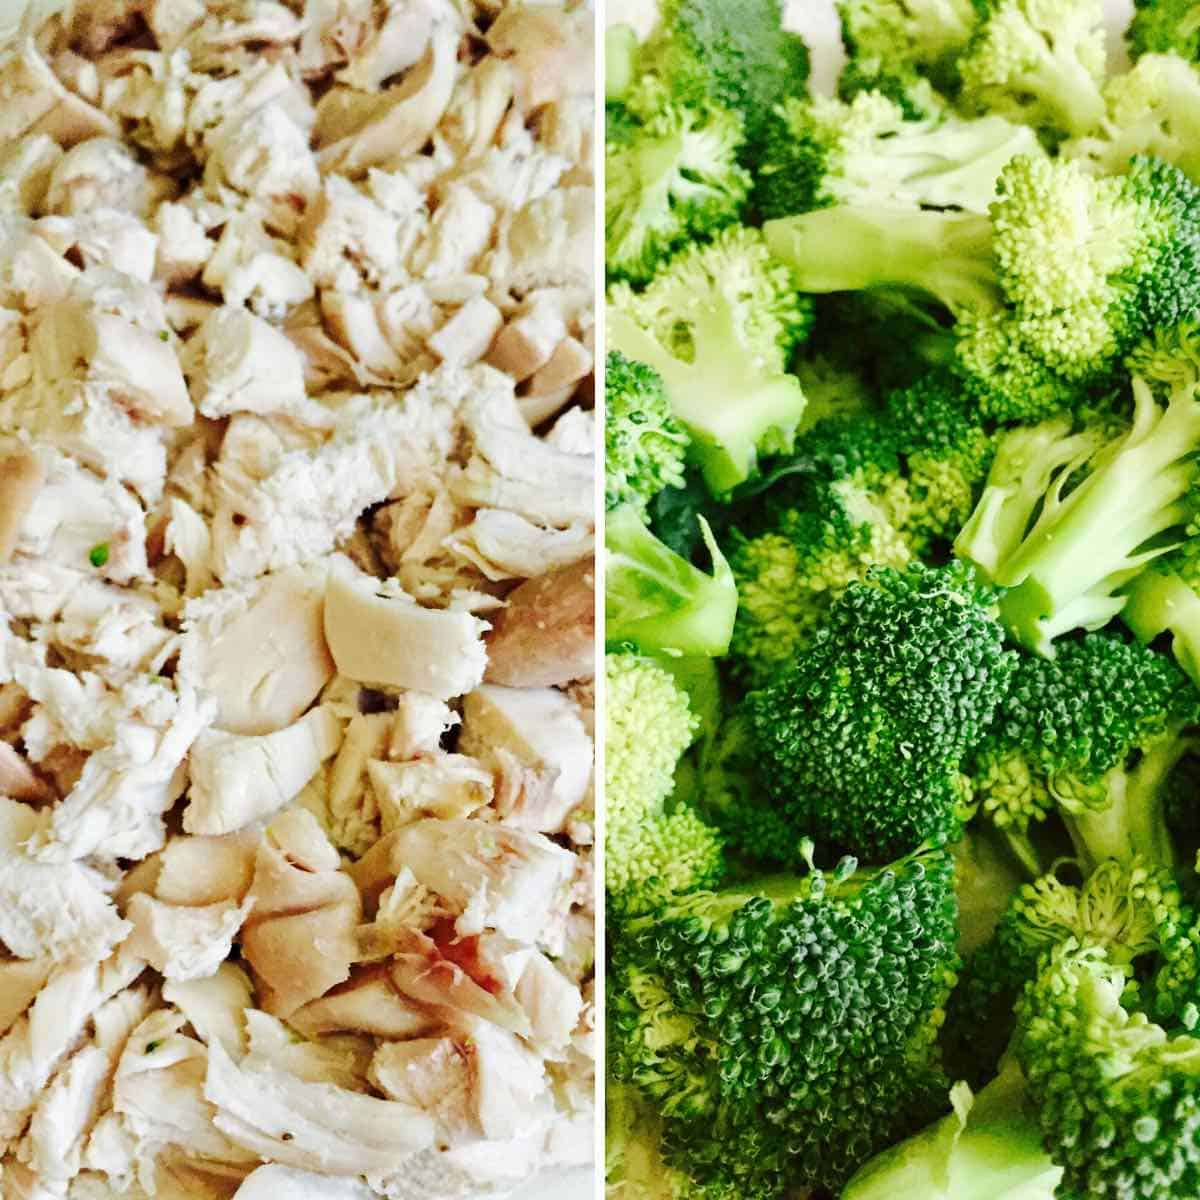 Chopped chicken and broccoli.